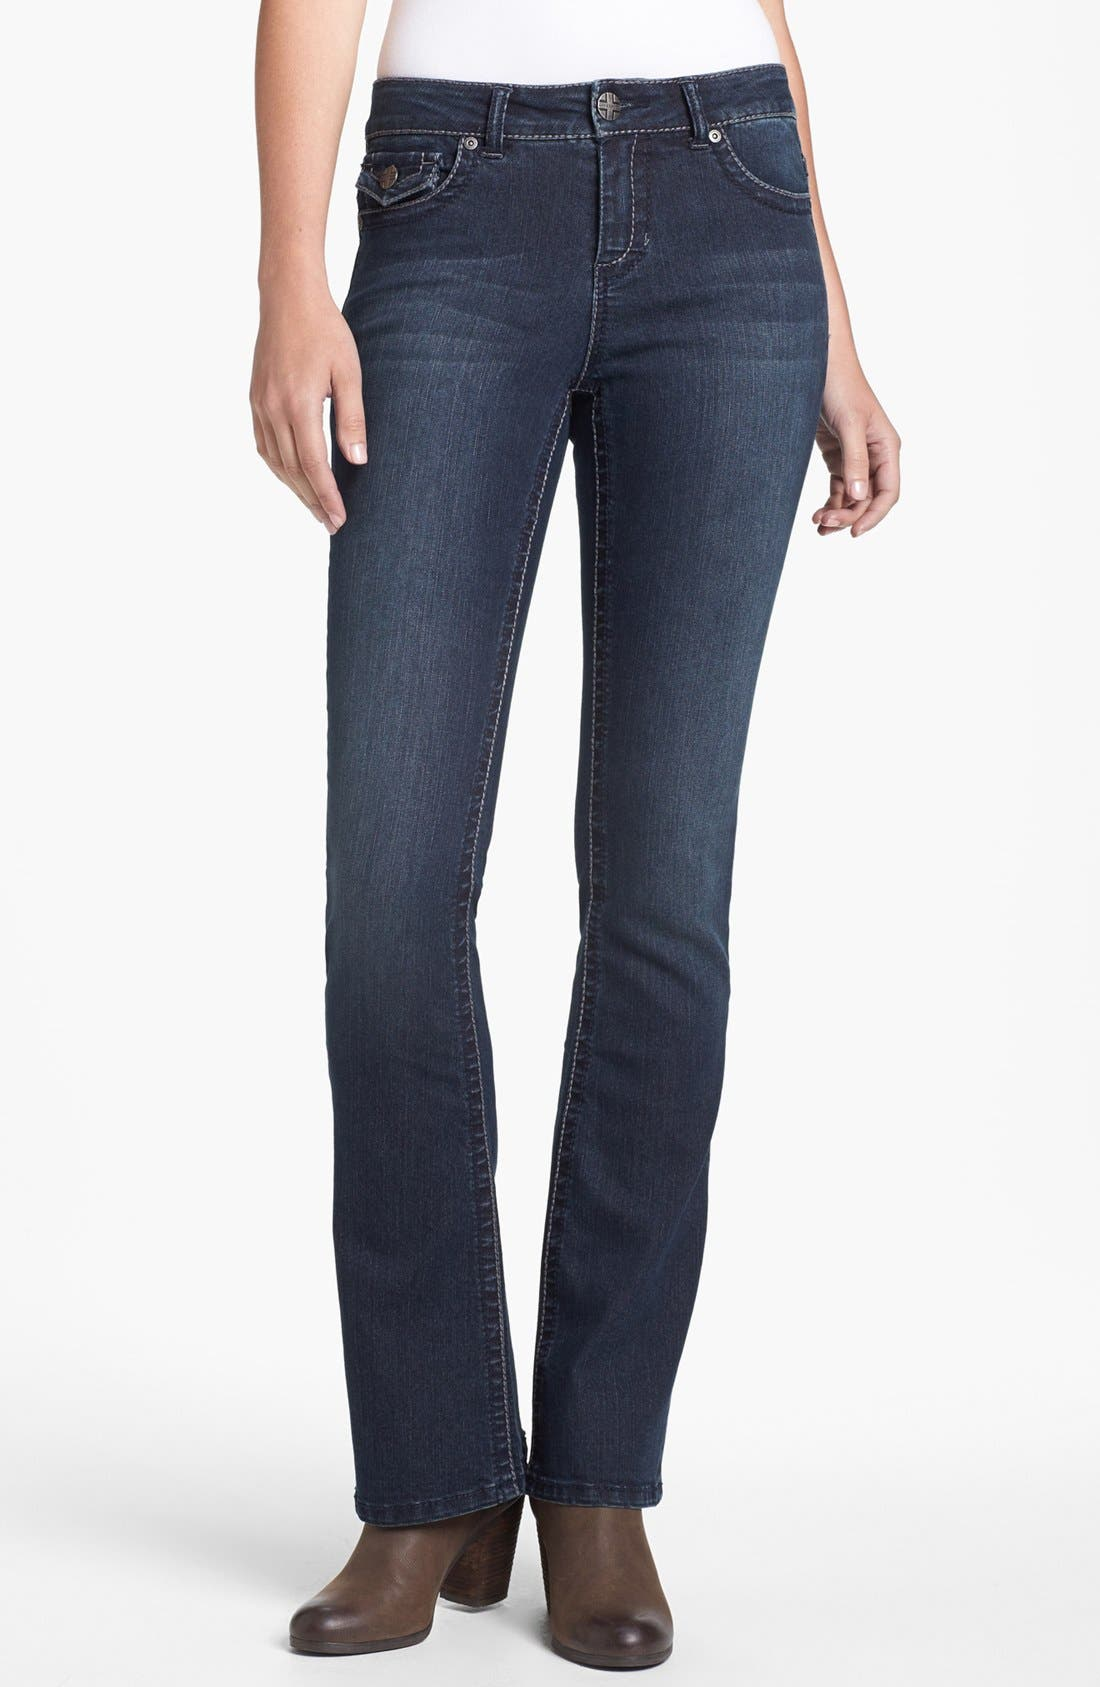 Main Image - Liverpool Jeans Company 'Rita' Flap Pocket Stretch Bootcut Jeans